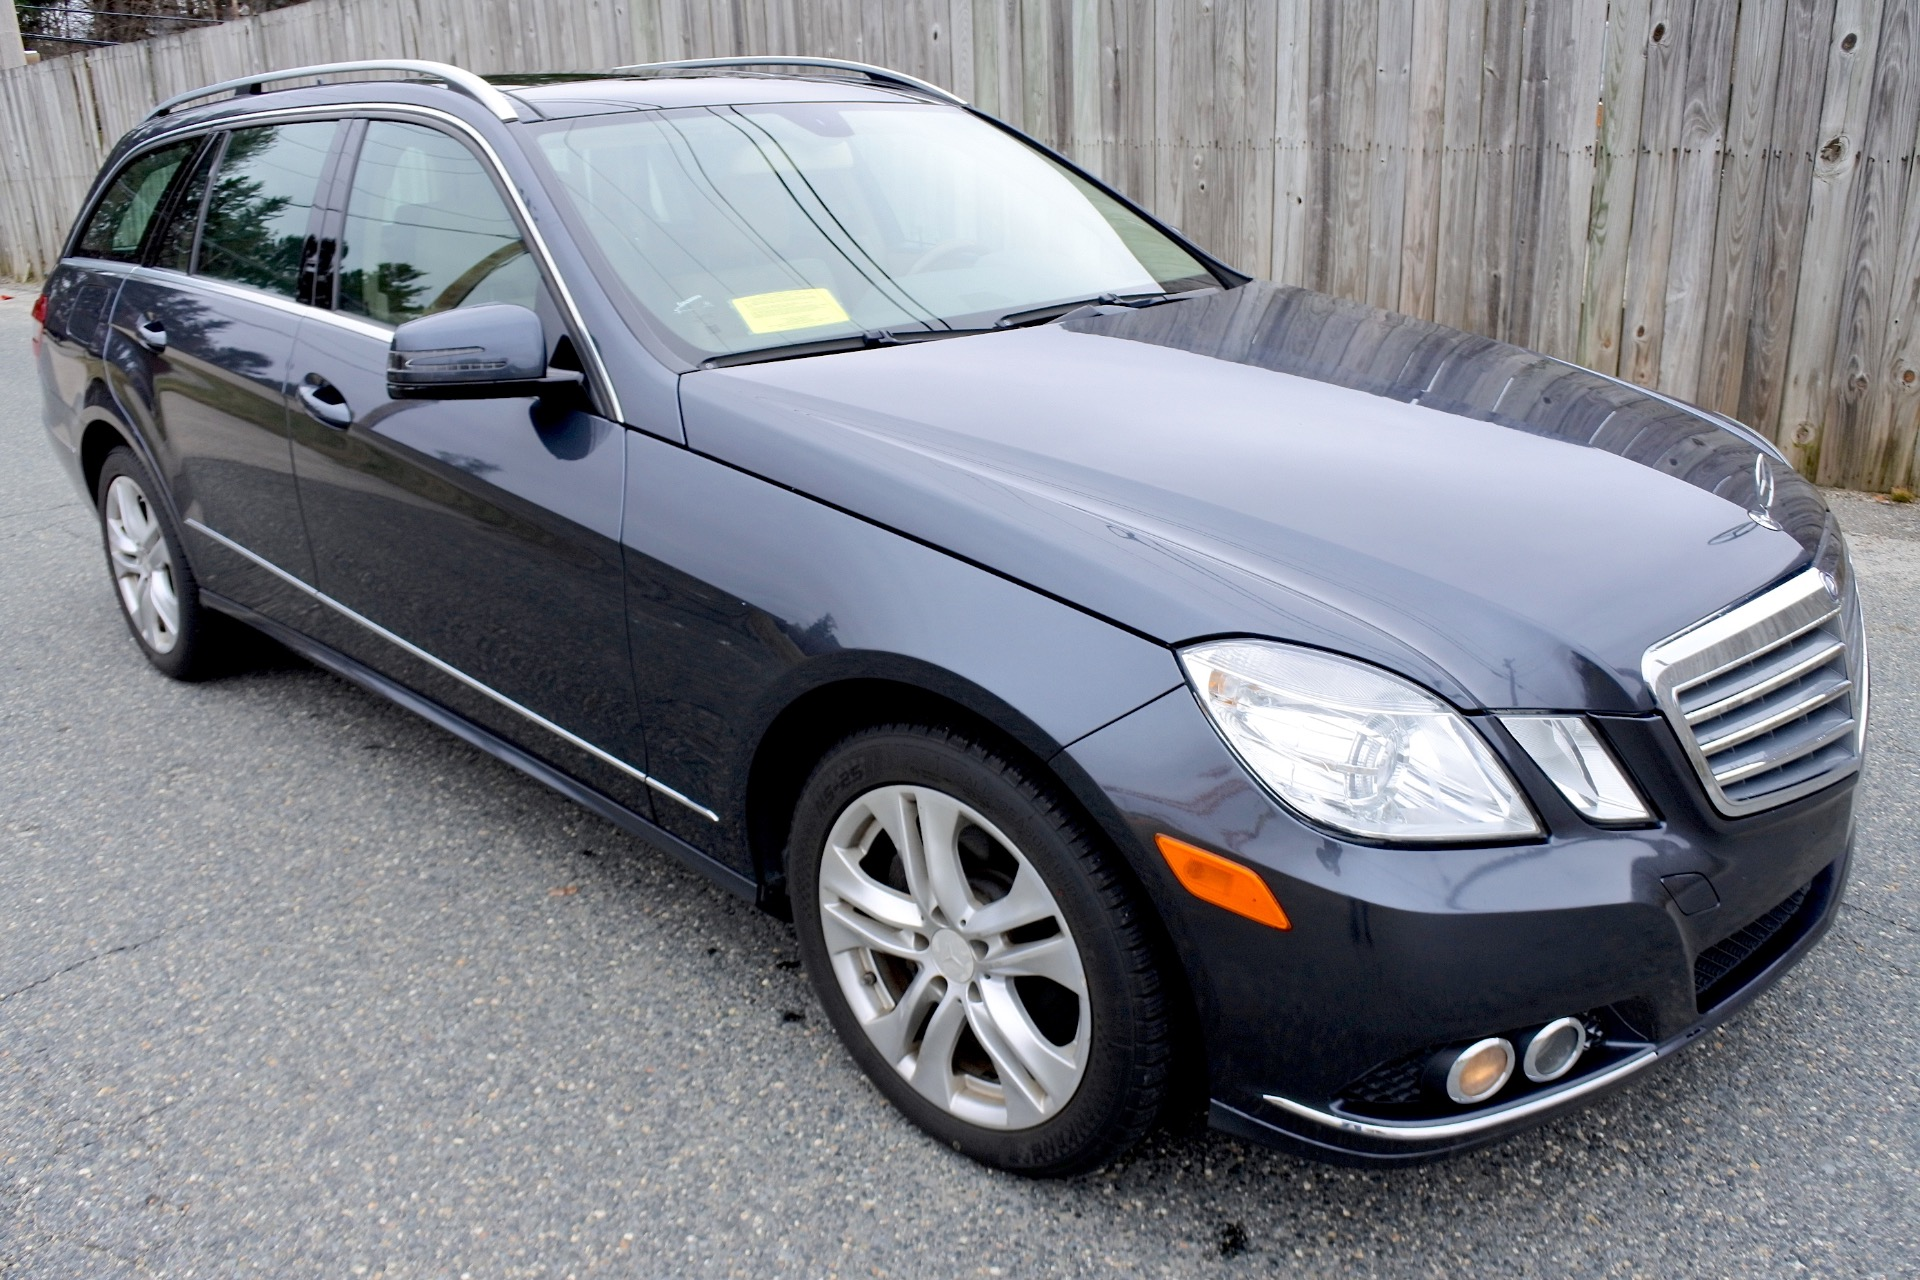 Used 2011 Mercedes-Benz E-Class 4dr Wgn E350 Luxury 4MATIC Used 2011 Mercedes-Benz E-Class 4dr Wgn E350 Luxury 4MATIC for sale  at Metro West Motorcars LLC in Shrewsbury MA 7